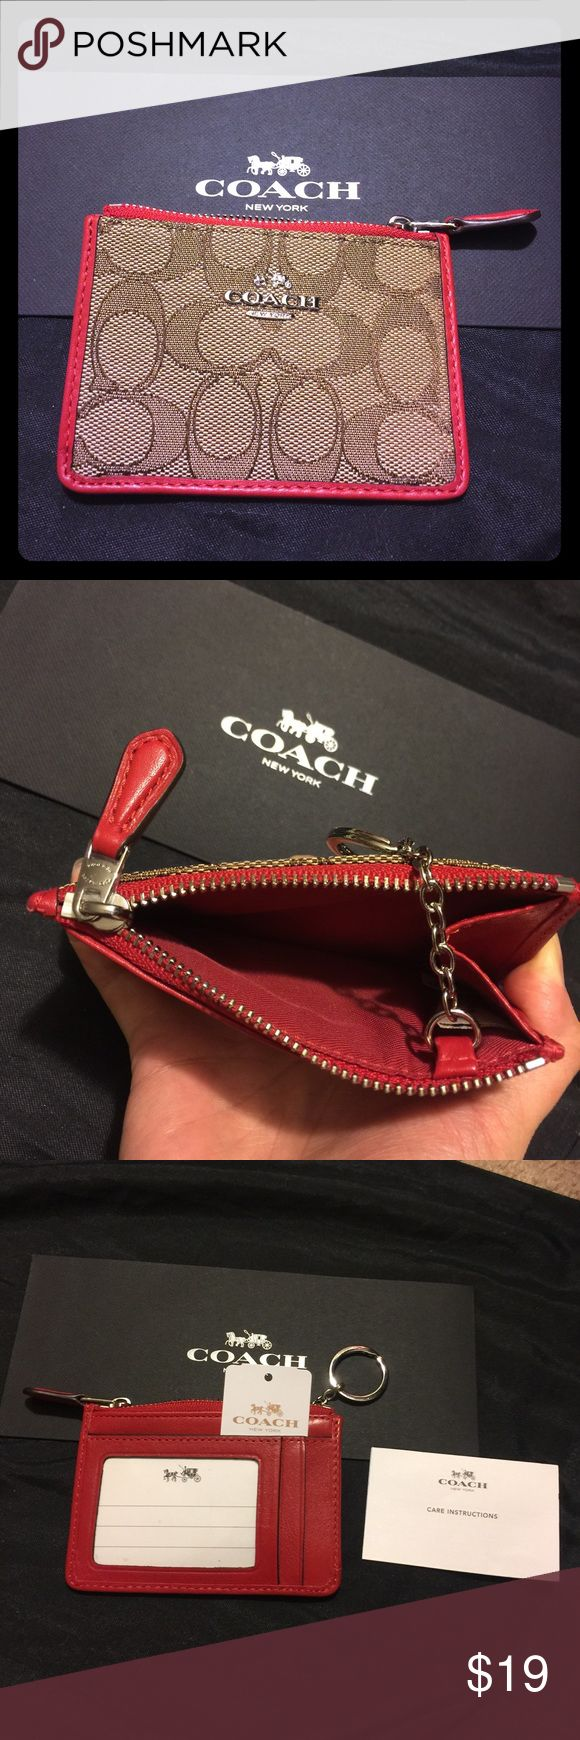 COACH signature mini skinny wallet coin keychain 😱DEAL!😱 COACH signature mini ID skinny wallet/coin purse. ID card and credit card slot. Zippered top with key ring easily lets you attach to keys, purse, backpack what ever for convenient on-the-go. Leather red trim. Signature fabric logos. Makes great gifts! 💝 Coach Accessories Key & Card Holders